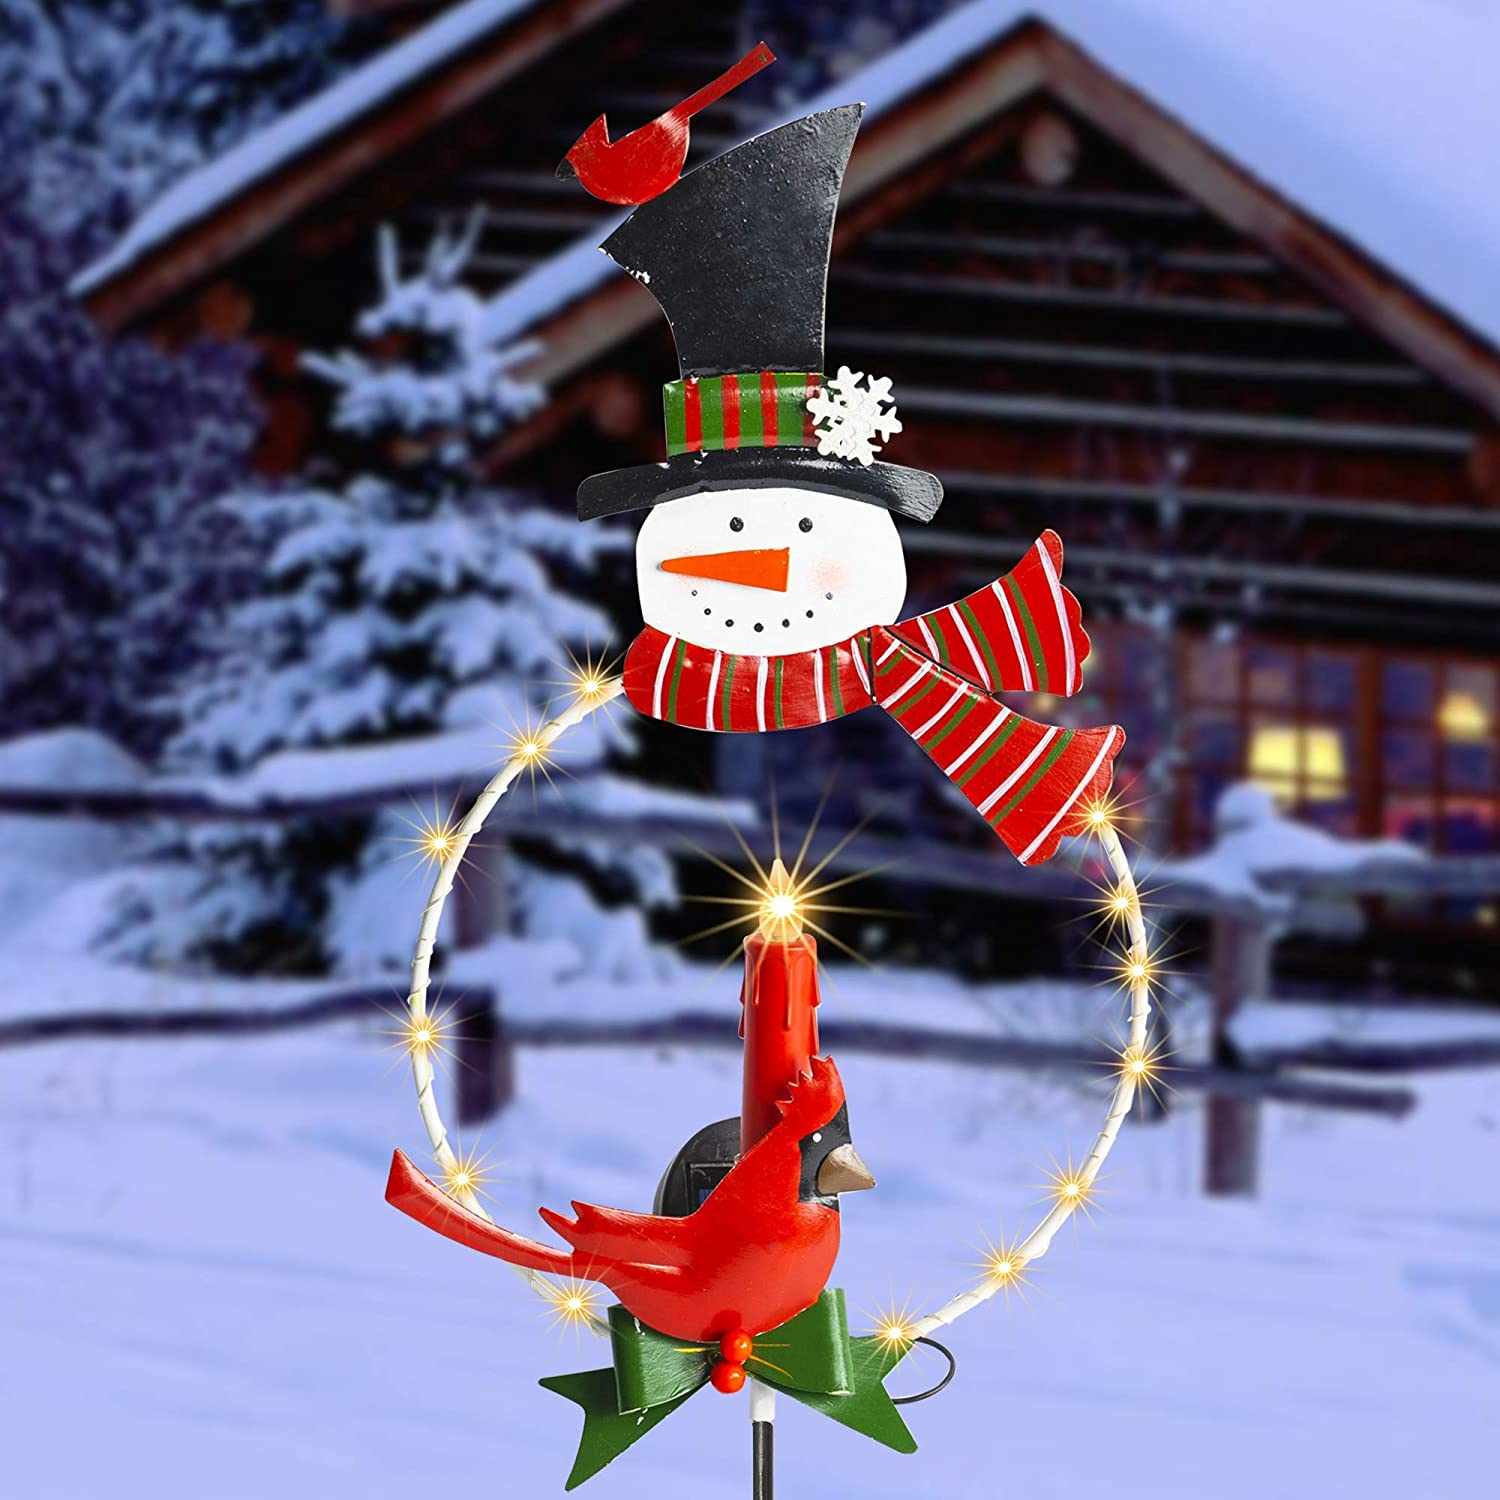 FUNPENY Solar LED Christmas Outdoor Decoration, Waterproof Snowman Signs Garden Stake Candle Pathway Lights, Metal Ornament for Patio Lawn Garden Yard Christmas Holiday Decor, 33 Inch